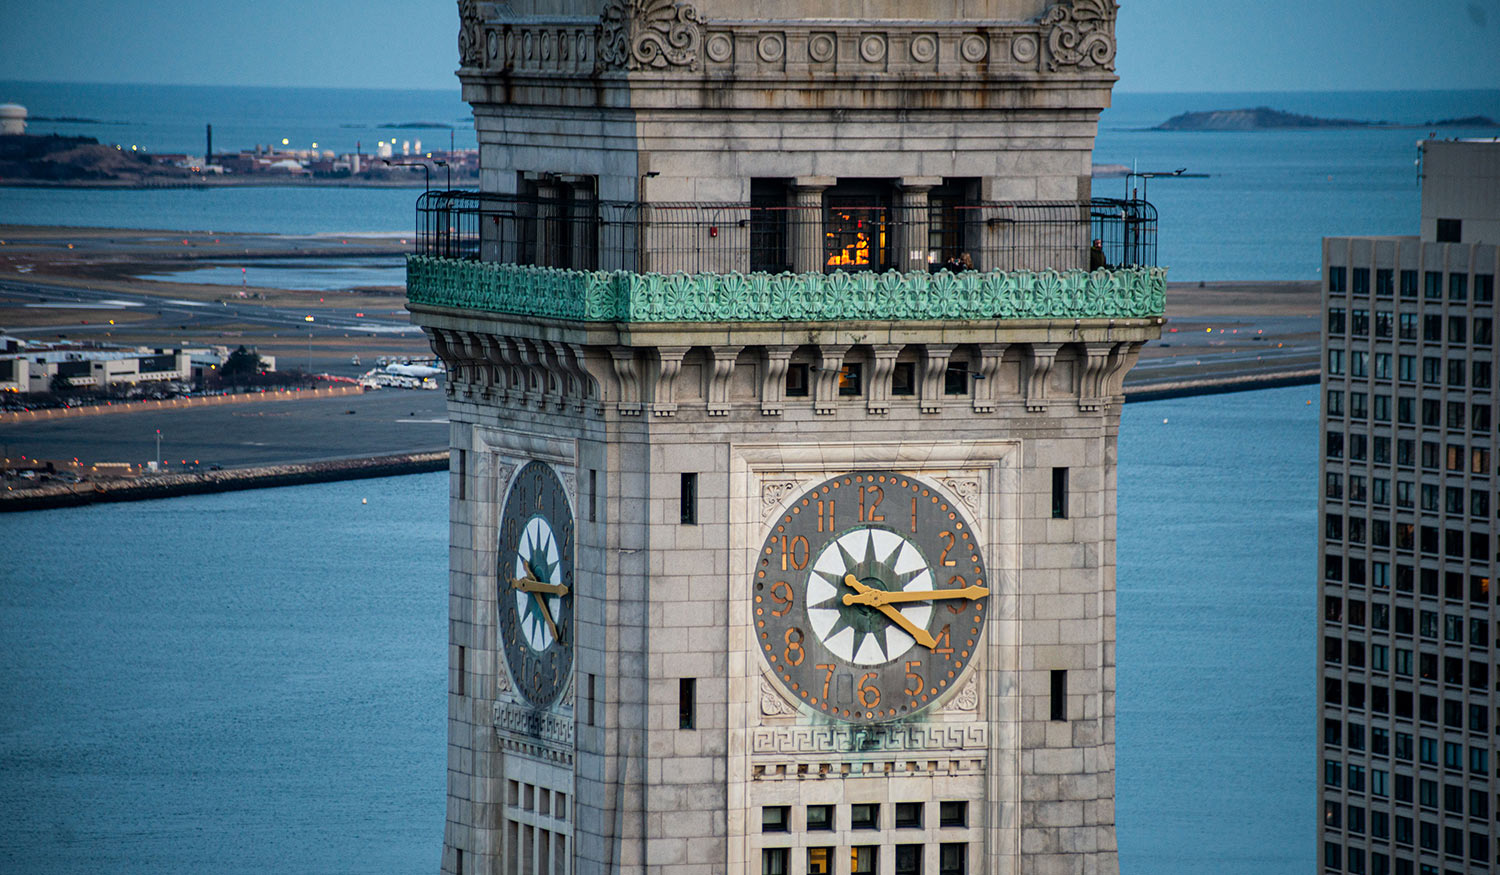 Composite clock tower hands, built by Lyman-Morse and installed on Boston's Custom House Tower